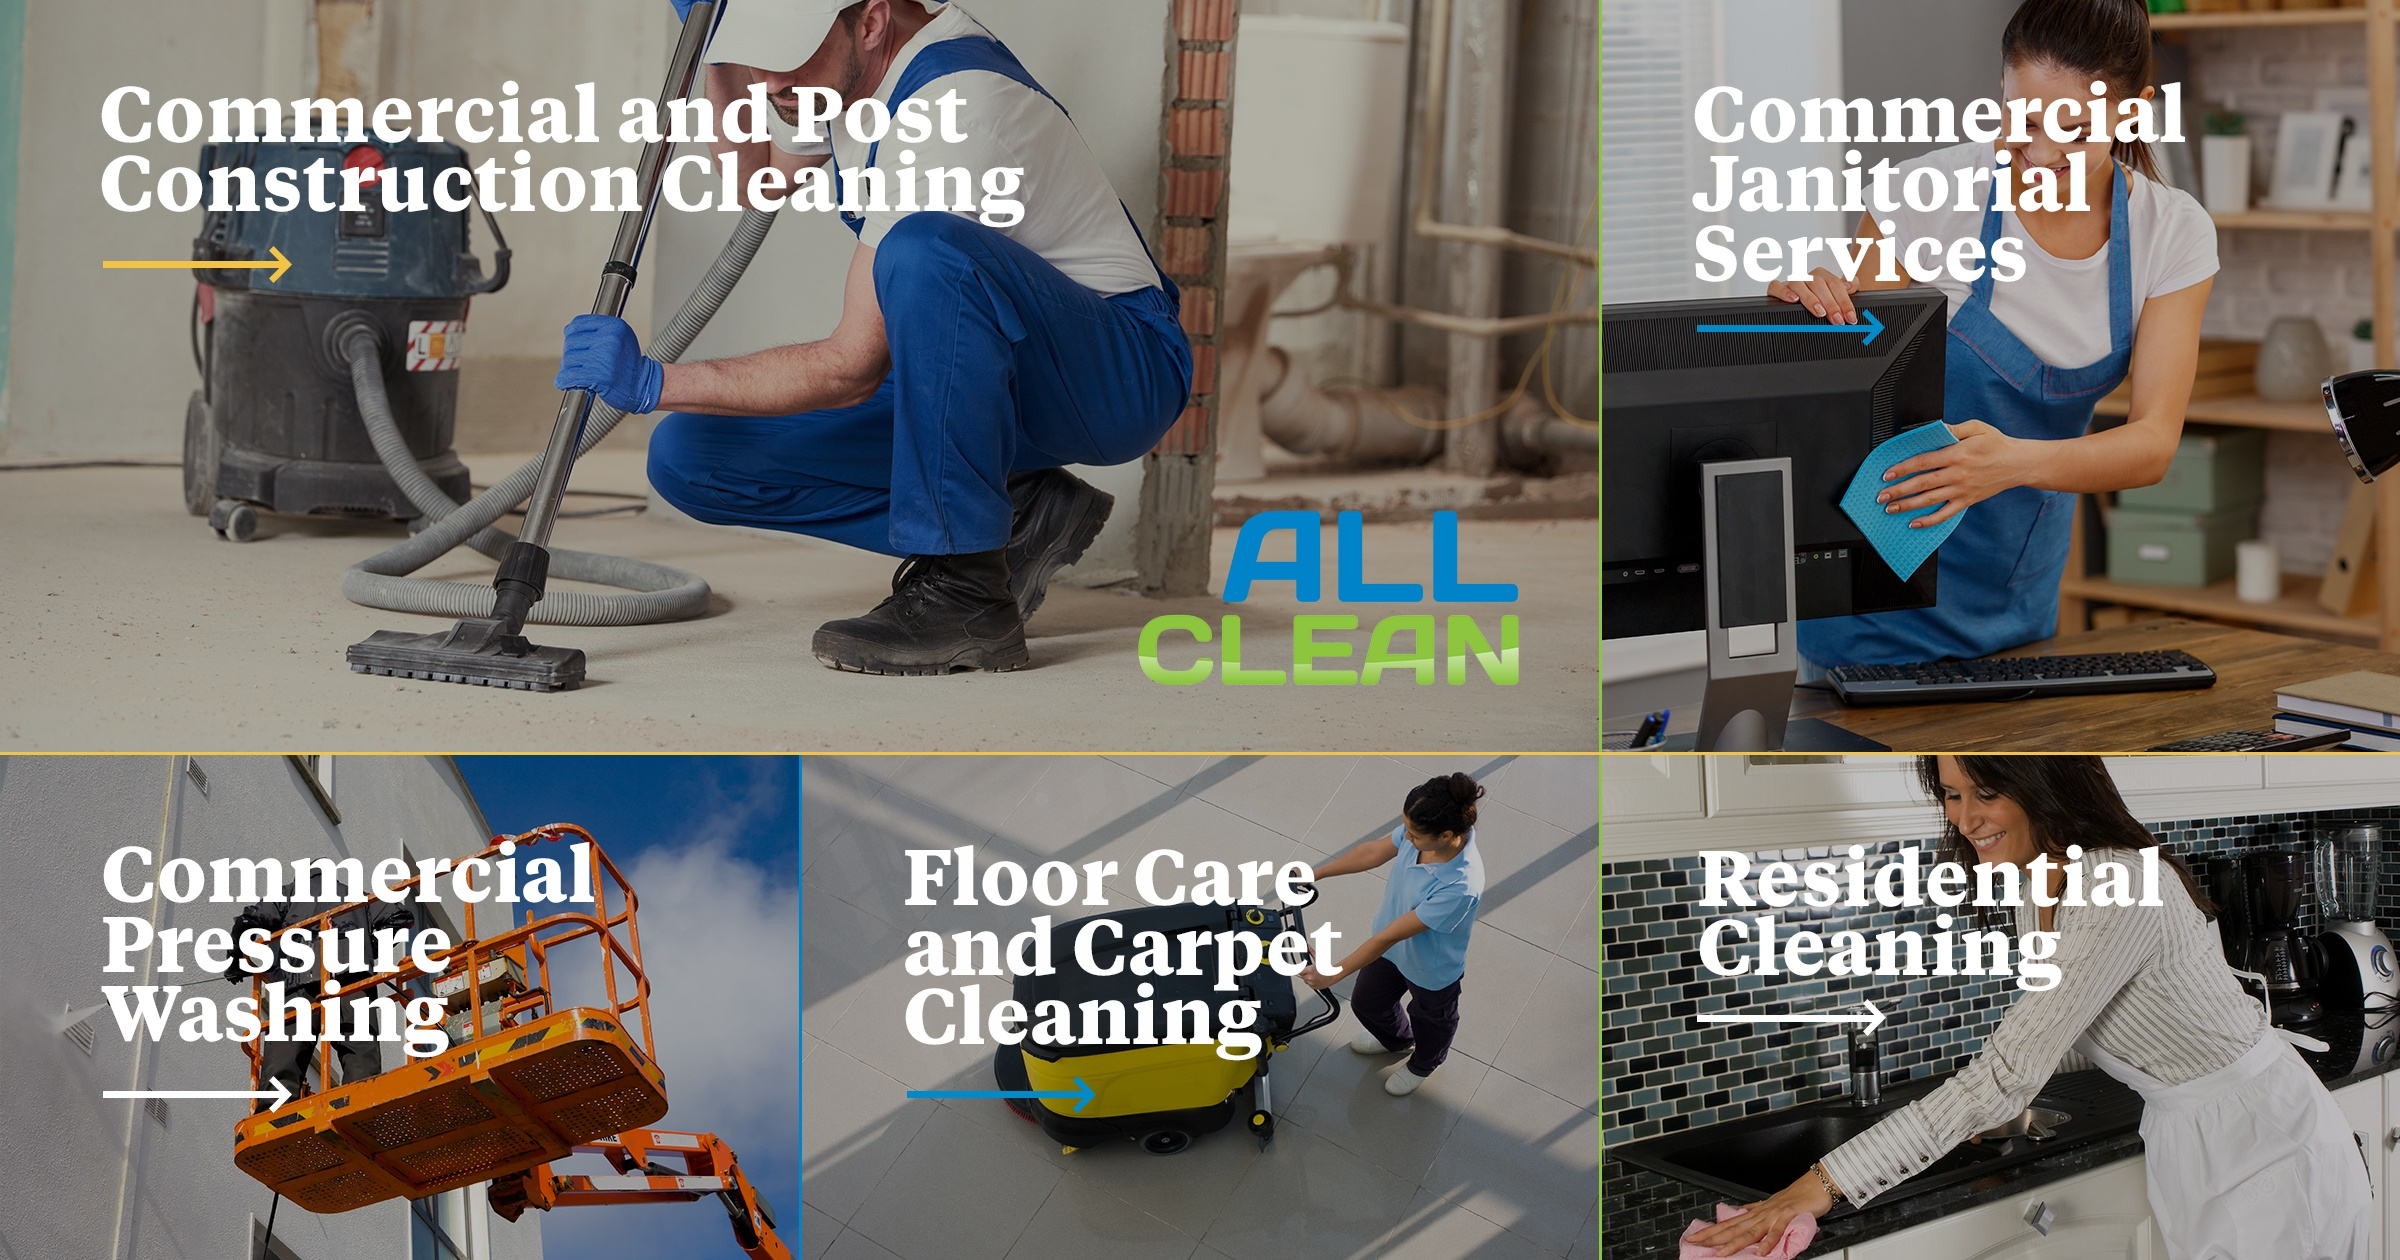 All Clean Commercial Residential Cleaning In Gainesville Since 1969